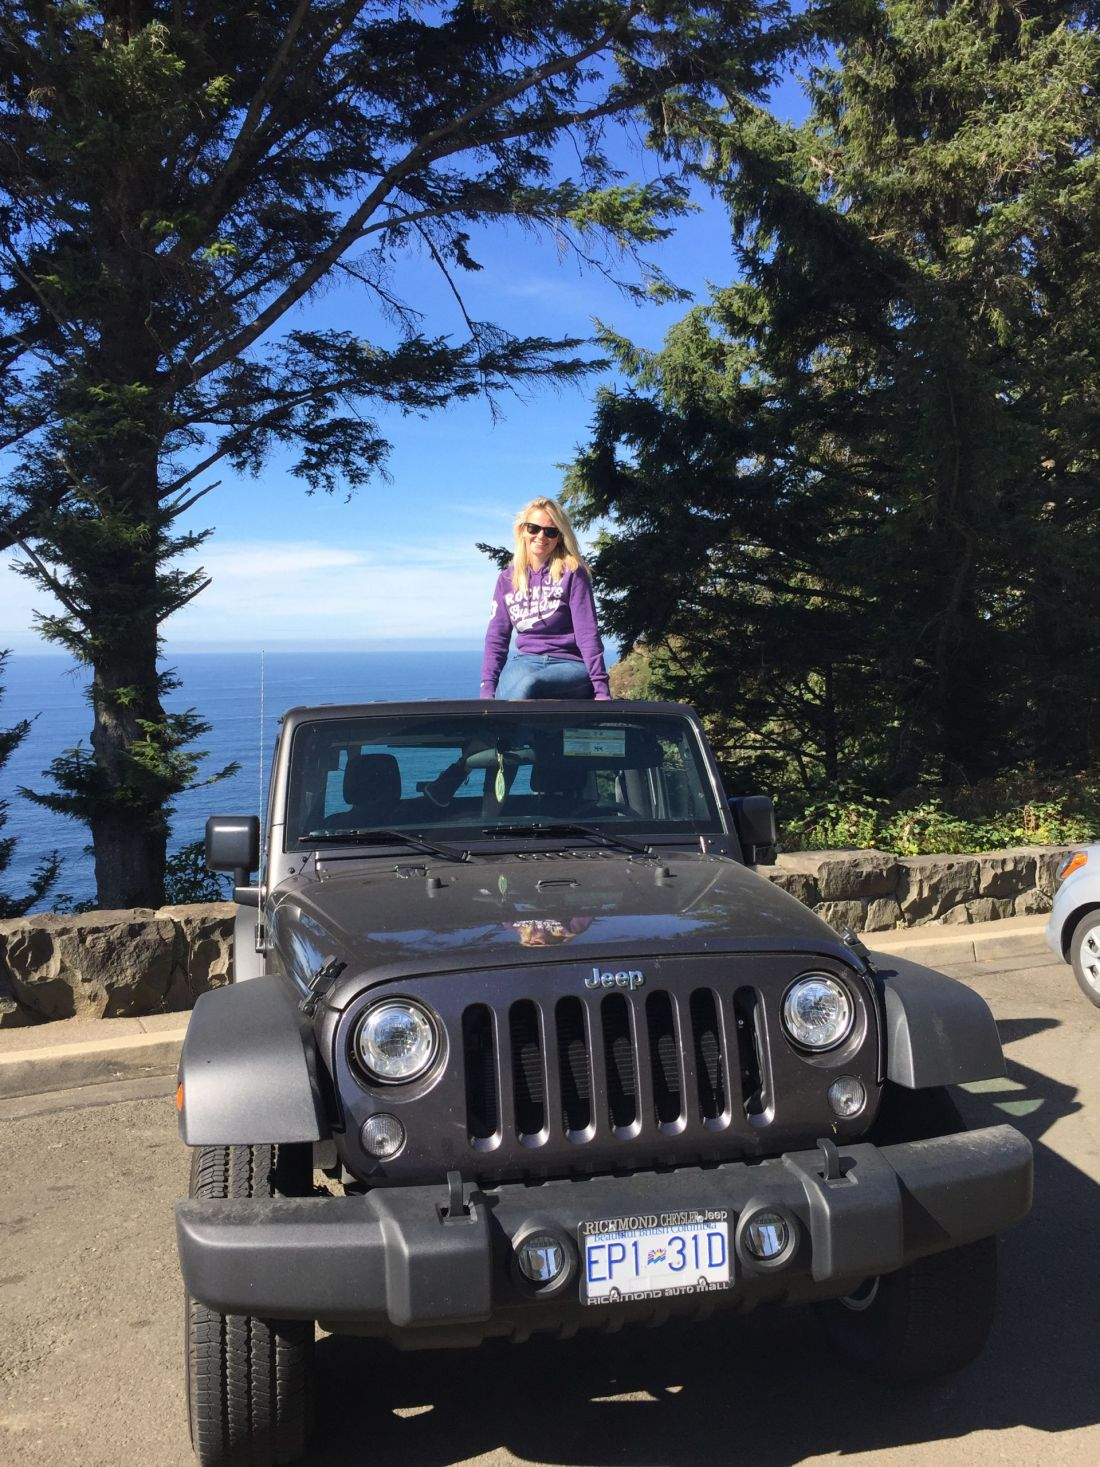 Laura in a Jeep on the Oregon Coast